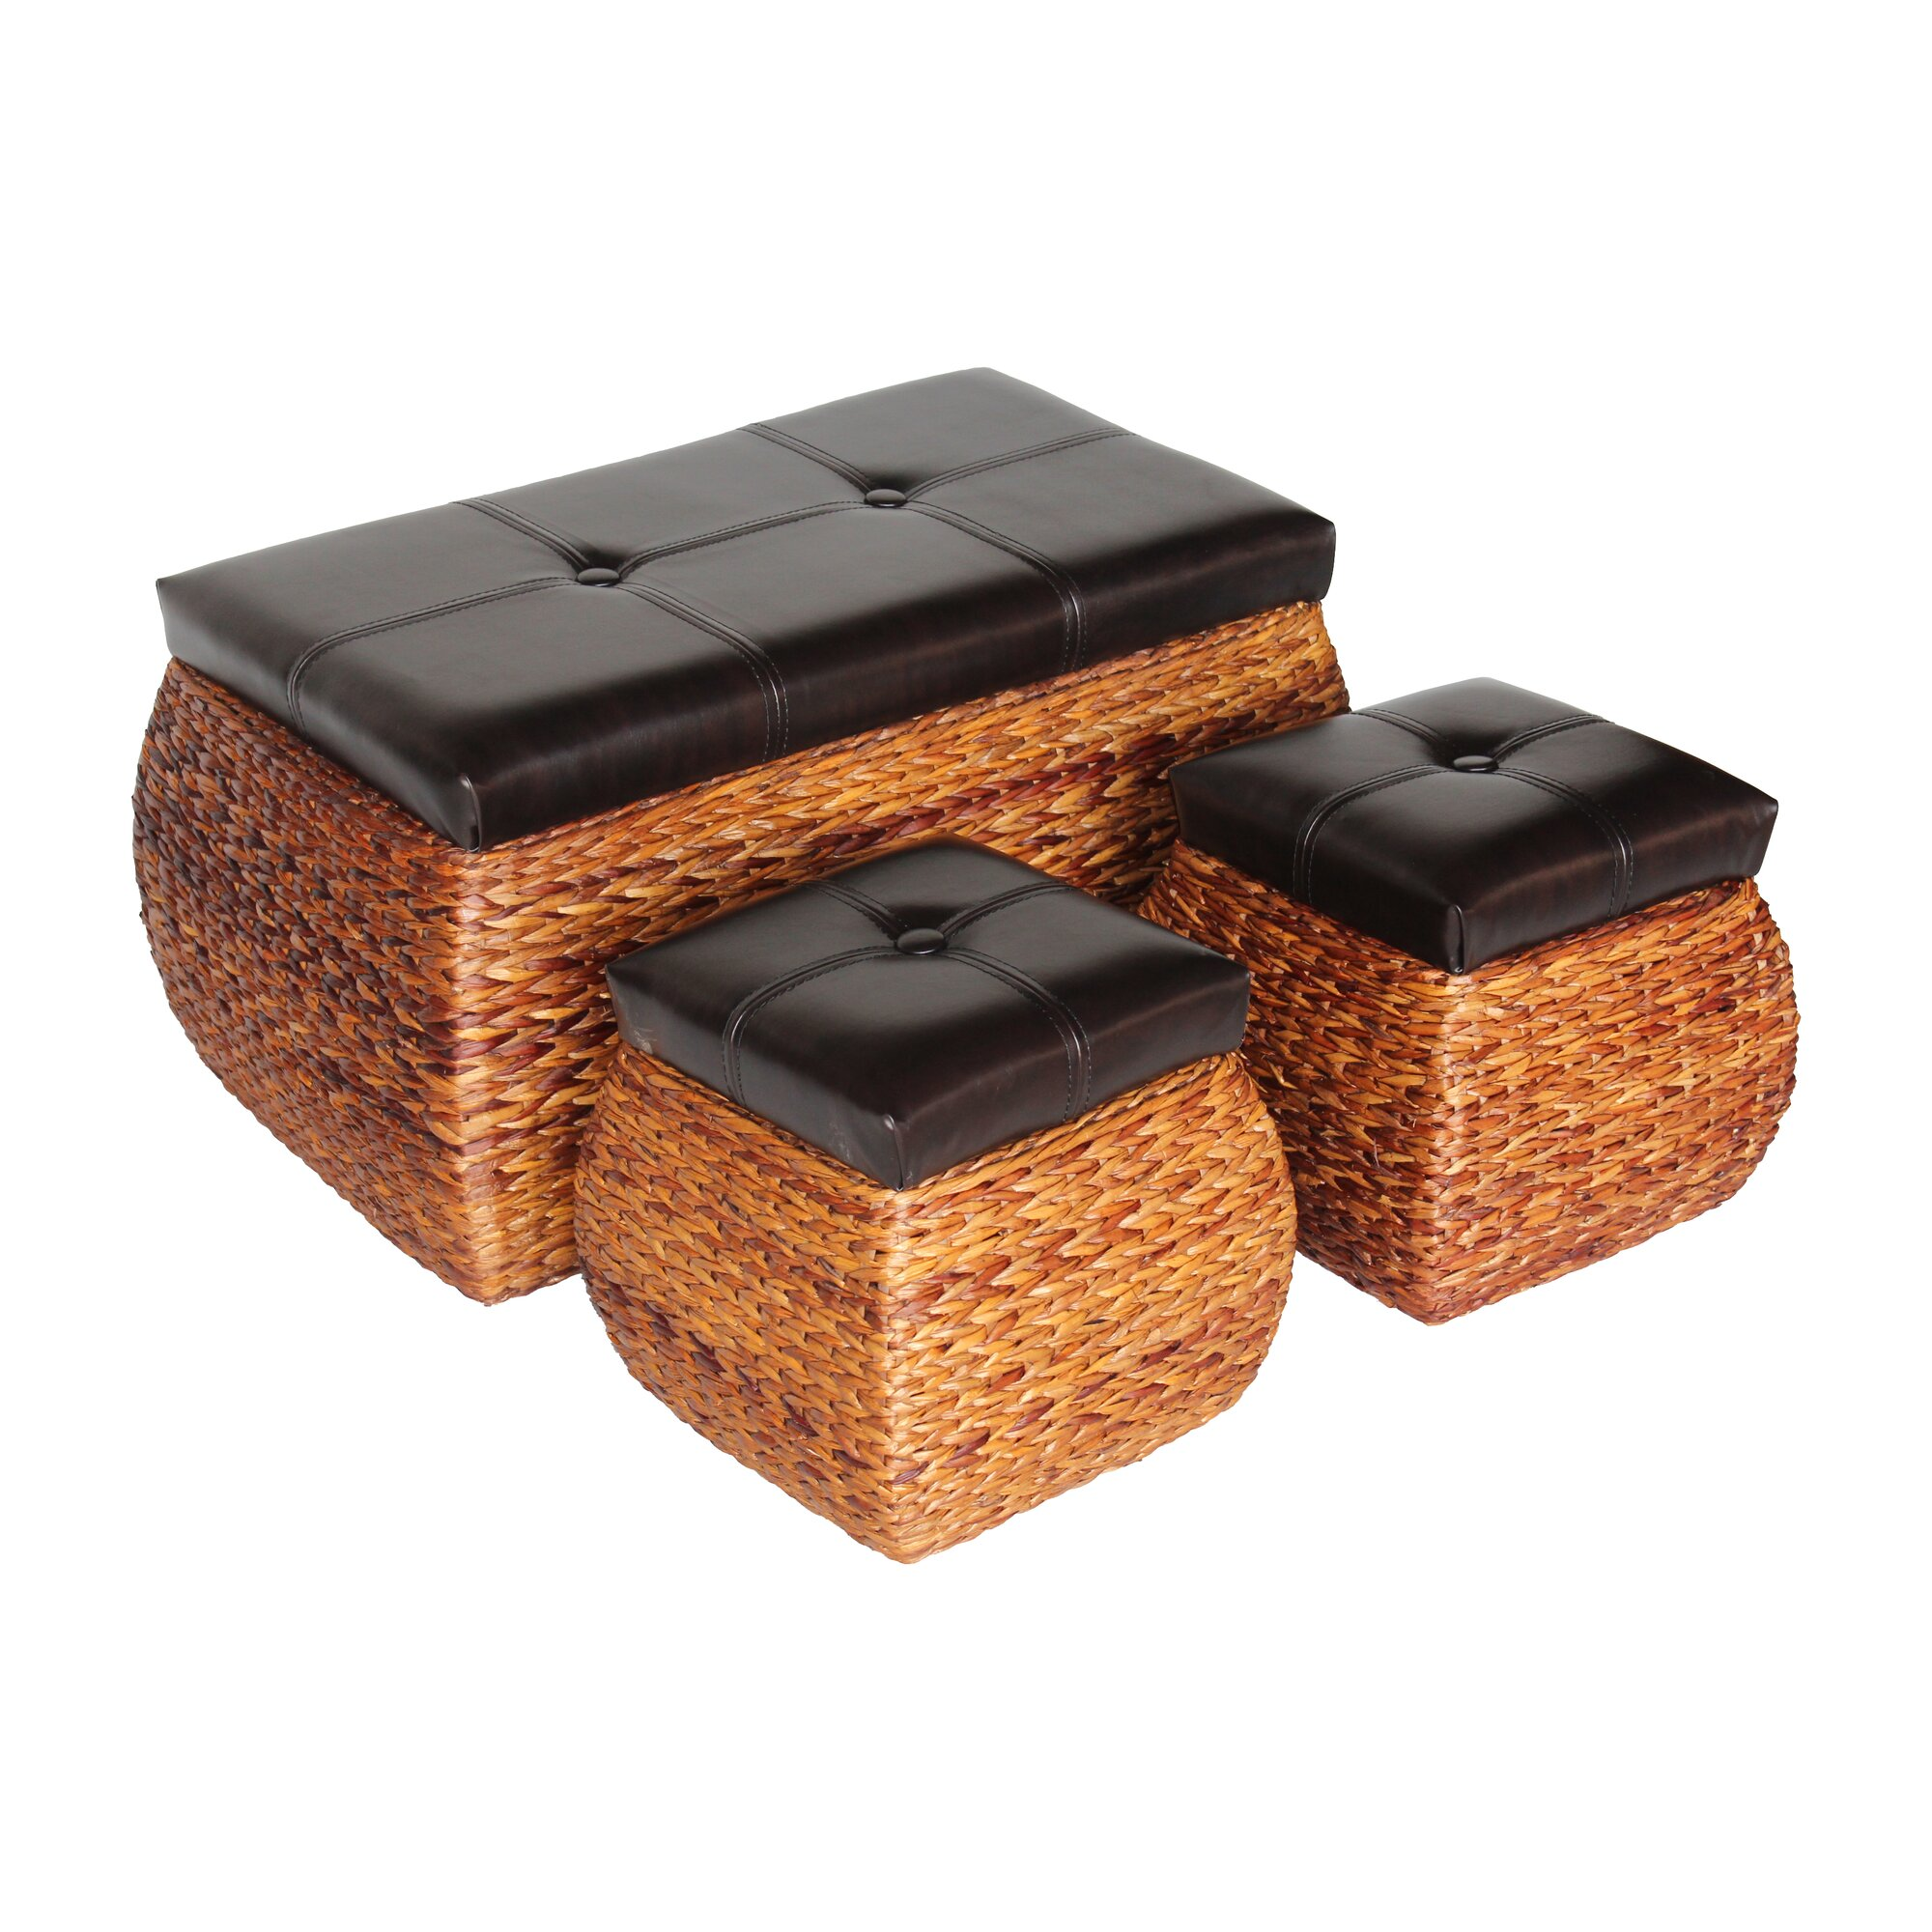 AttractionDesignHome 3 Piece Wicker Trunk And Ottoman Set